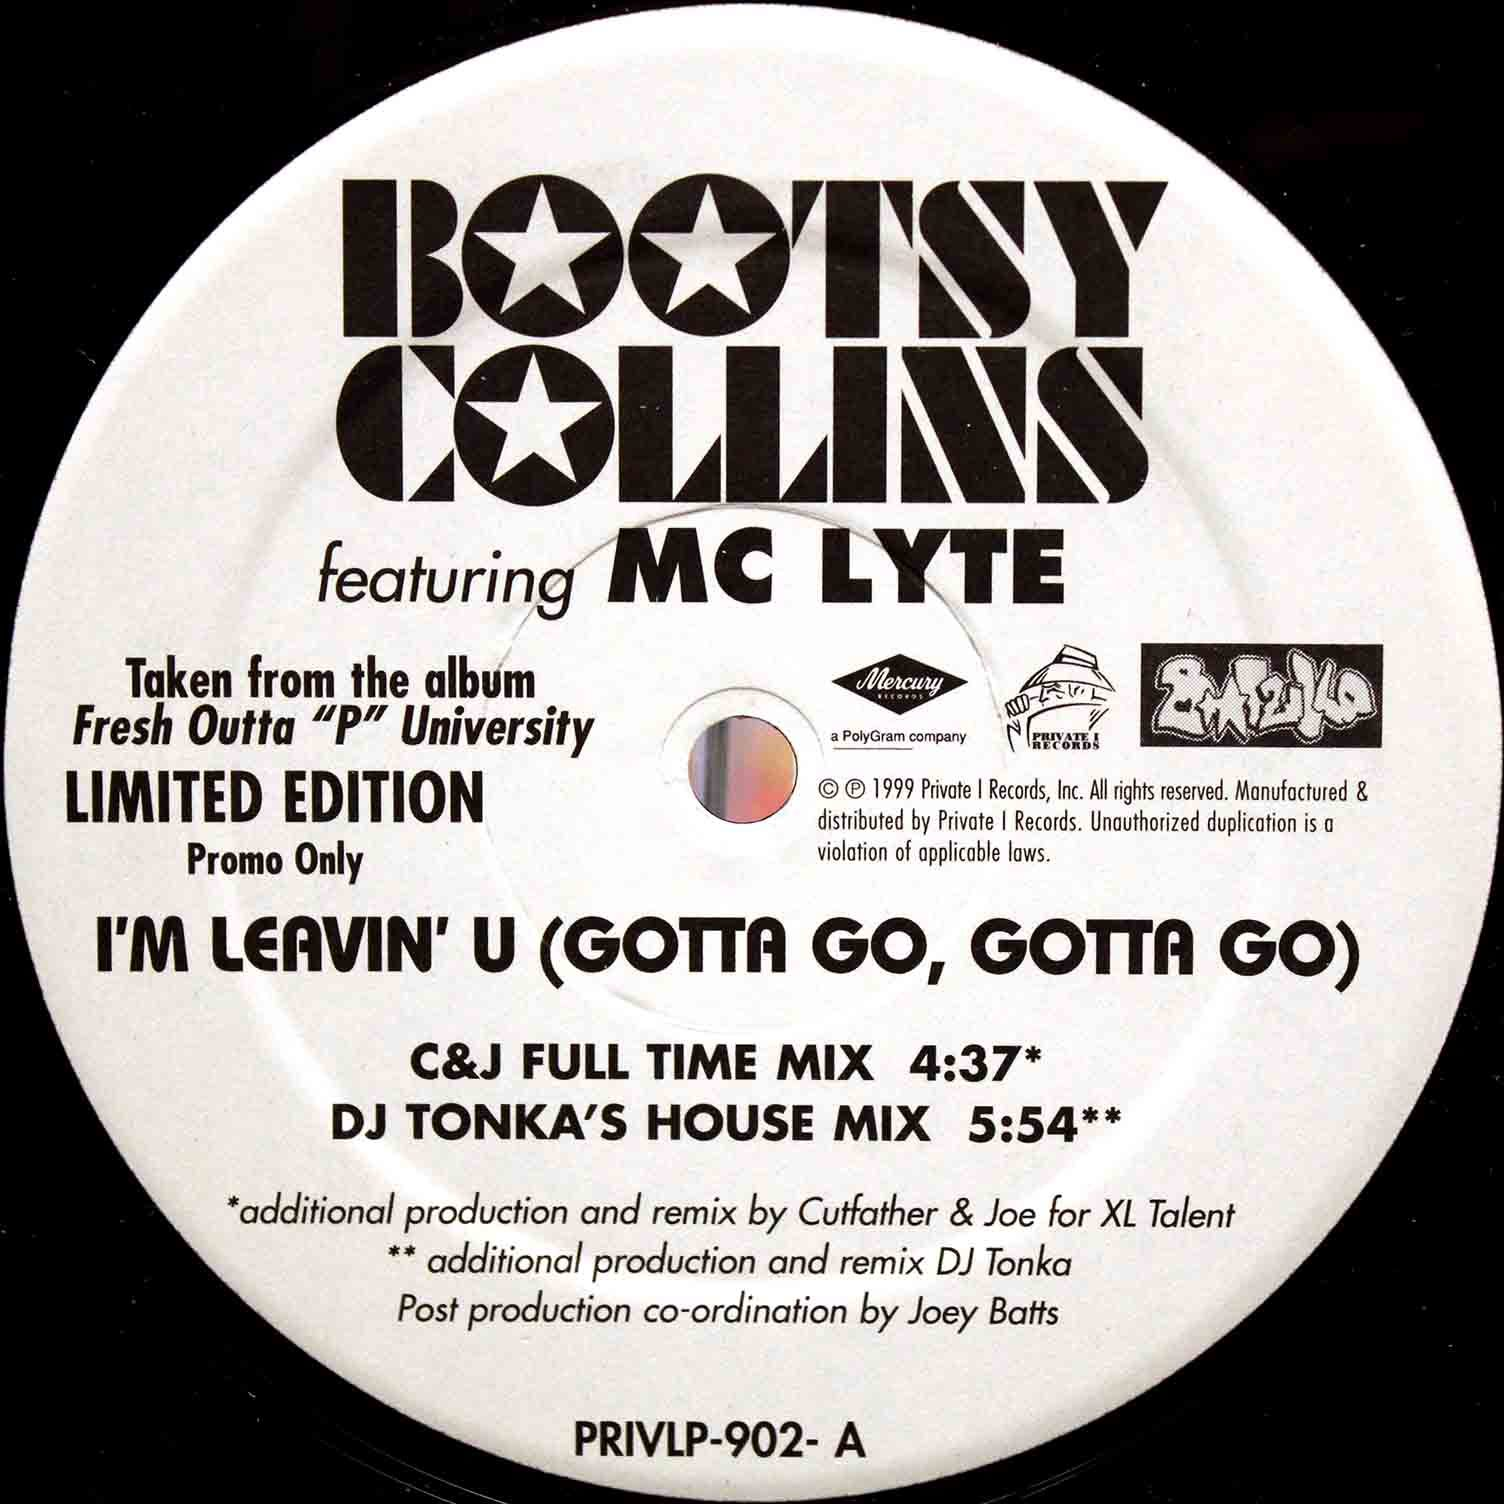 Bootsy Collins - Im Leavin You 03